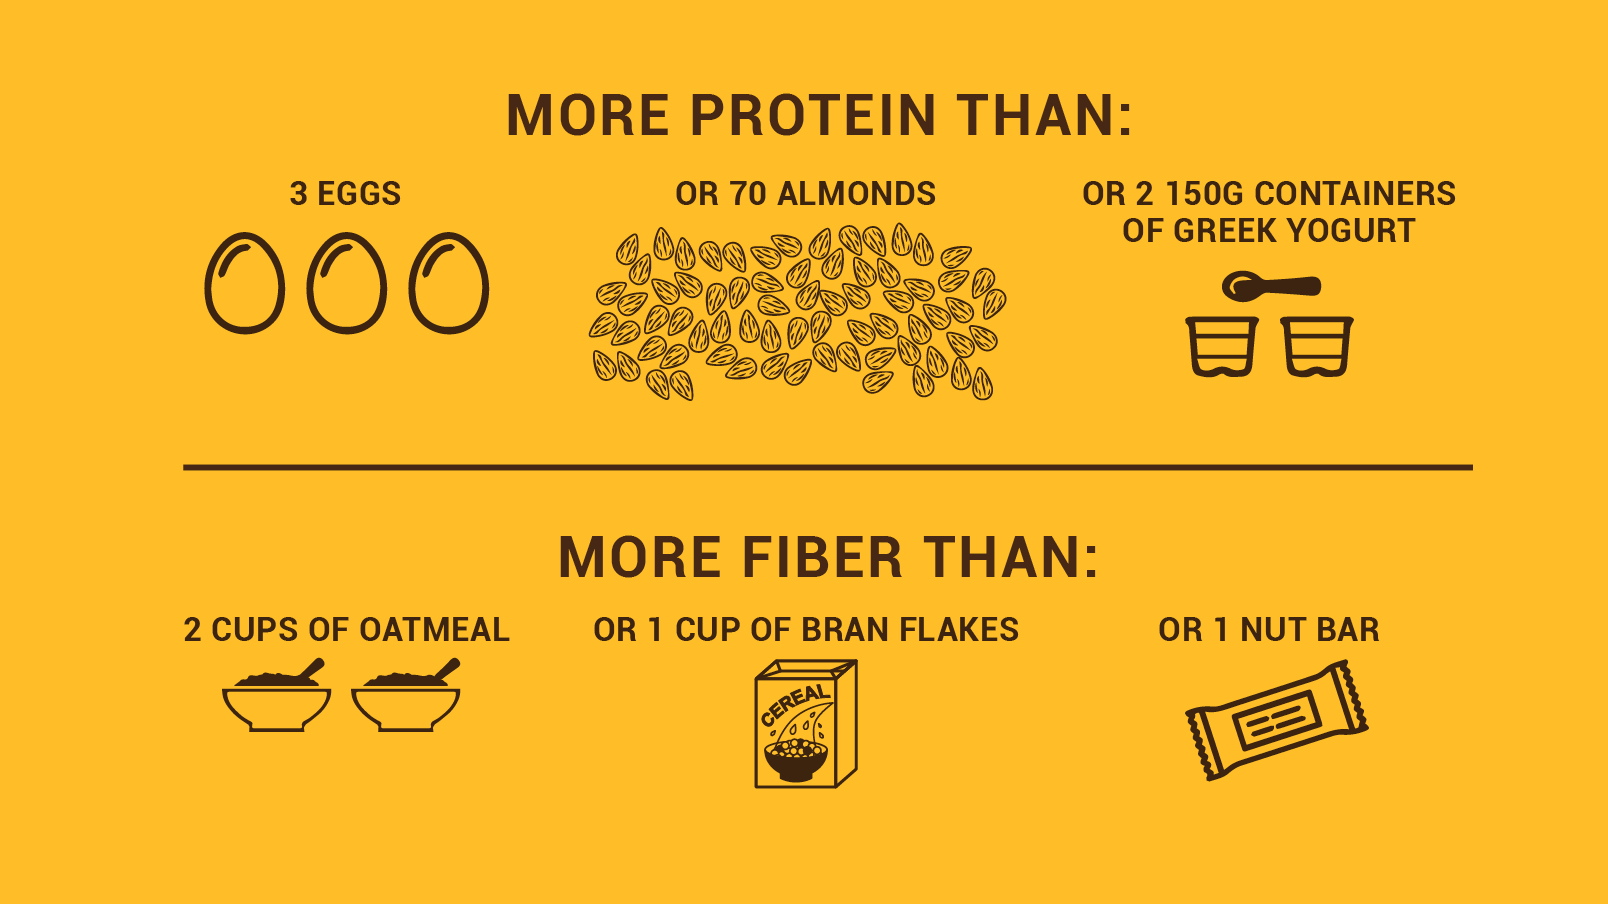 BOONBOX has more protein than 3 eggs or 70 almonds or 2 150g containers of greek yogurt